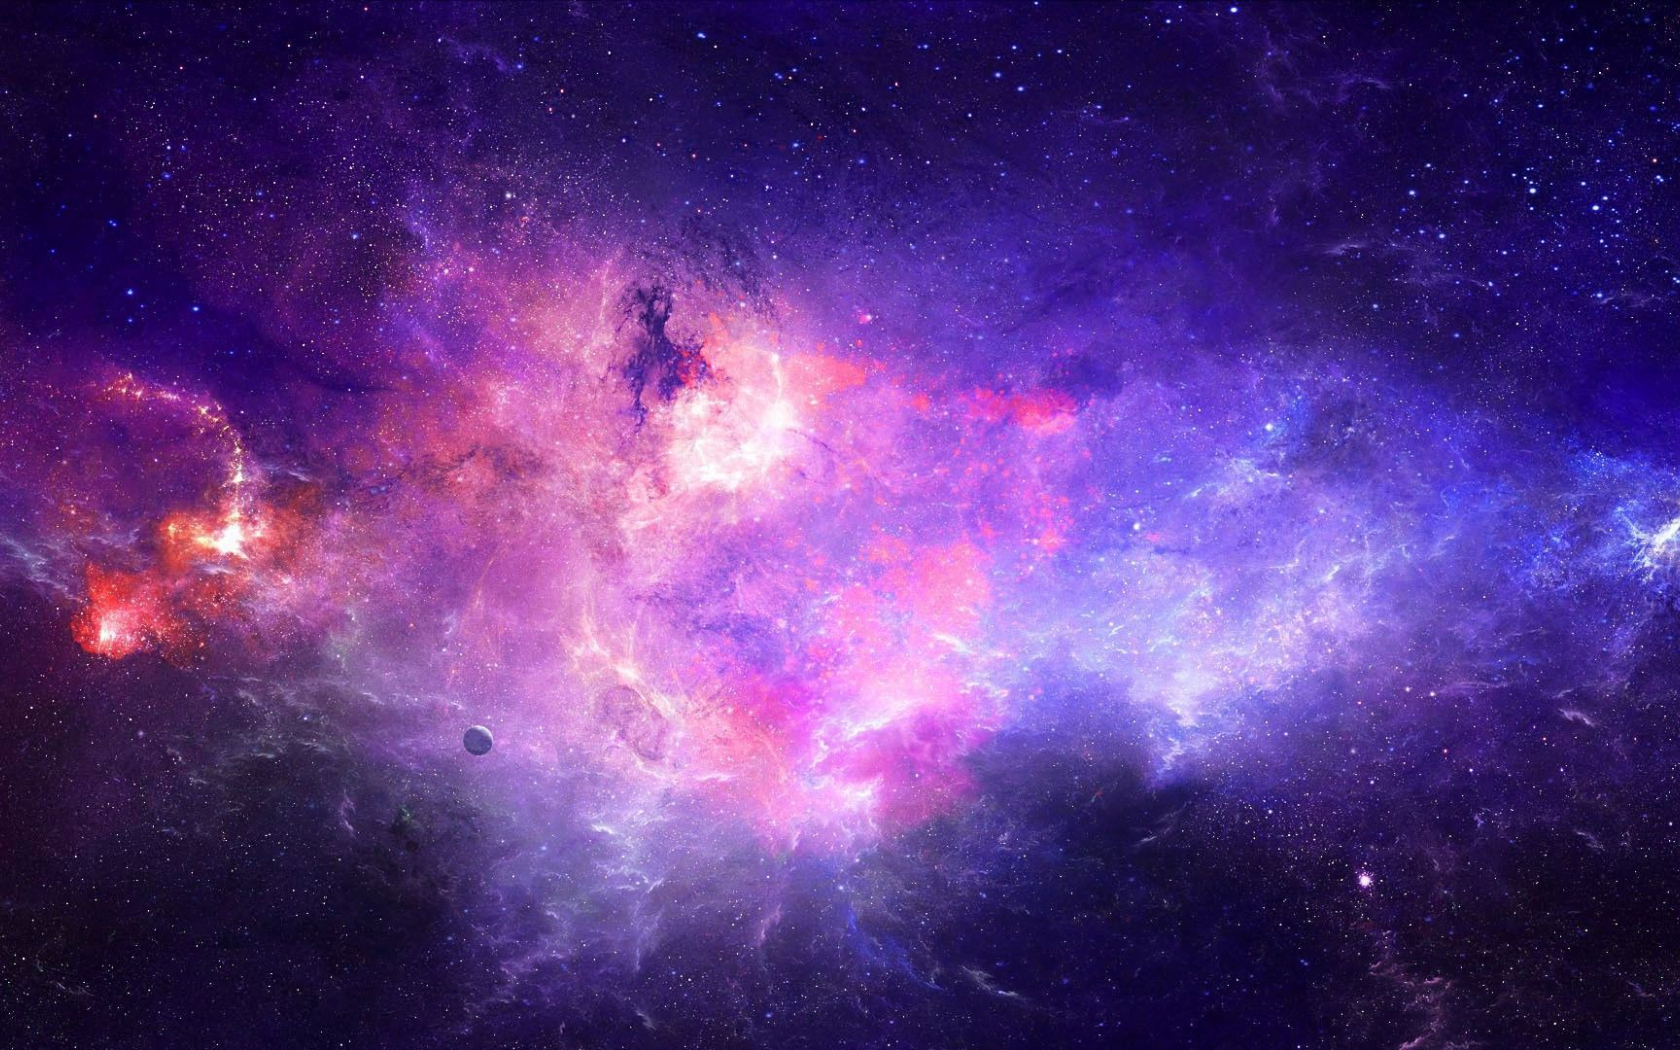 Free Download 35 Hd Galaxy Wallpapers For Download 1920x1080 For